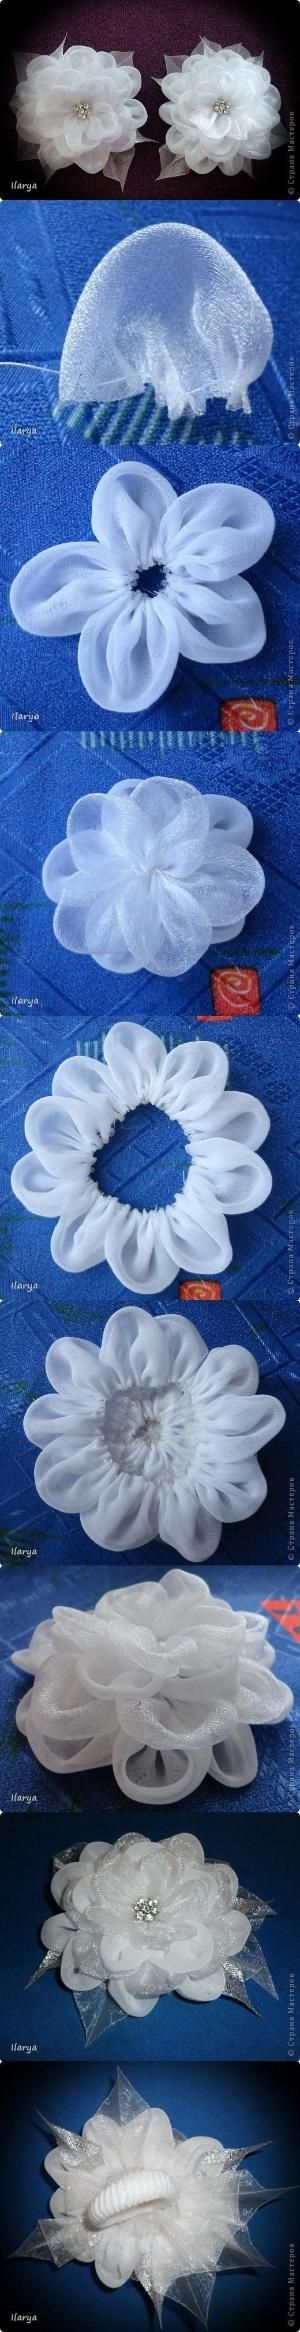 DIY Fabric Lust Flower by elsa garza